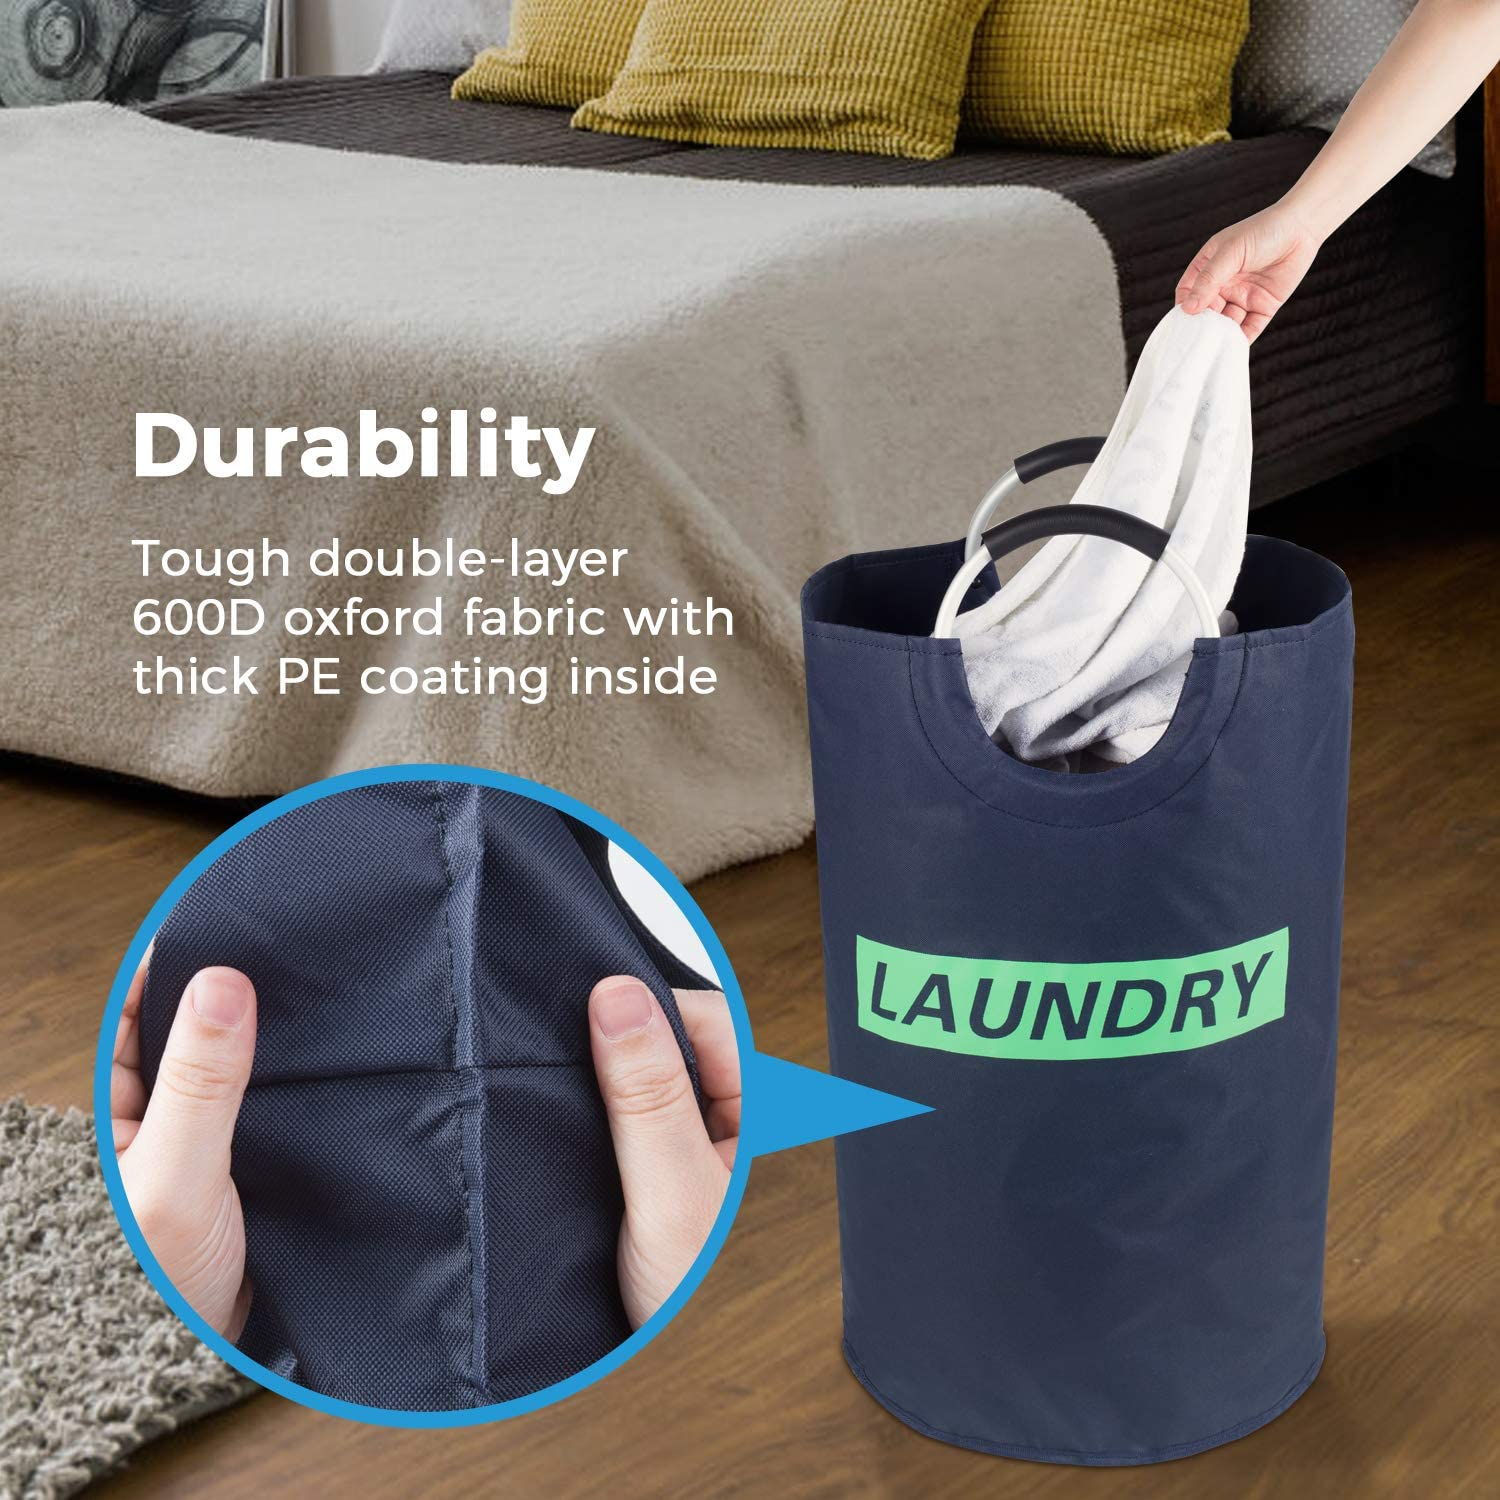 Lifewit Large Laundry Hamper Collapsible Clothes Basket Durable Oxford Fabric Portable Folding Washing Bin Black 14.9 D /× 25.2 H